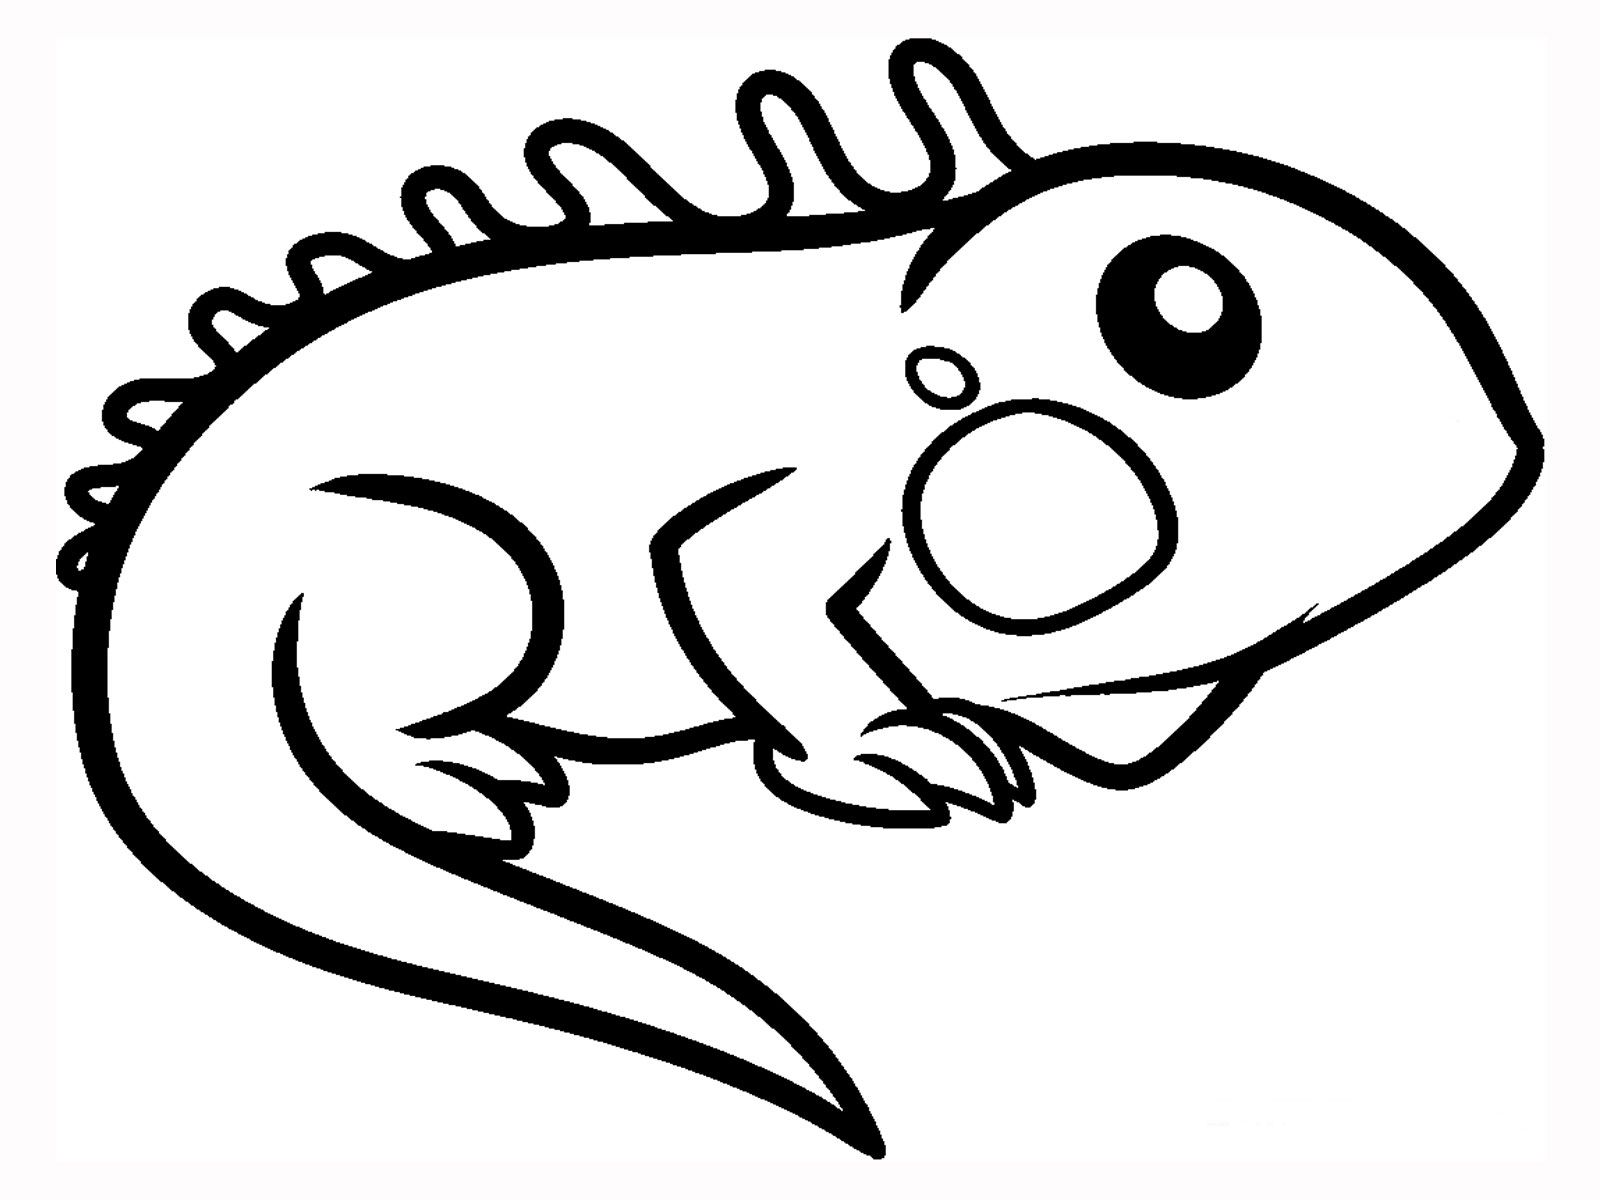 Green Iguana Coloring Pages Cute Easy Animal Drawings Easy Animal Drawings Animals Drawing Images